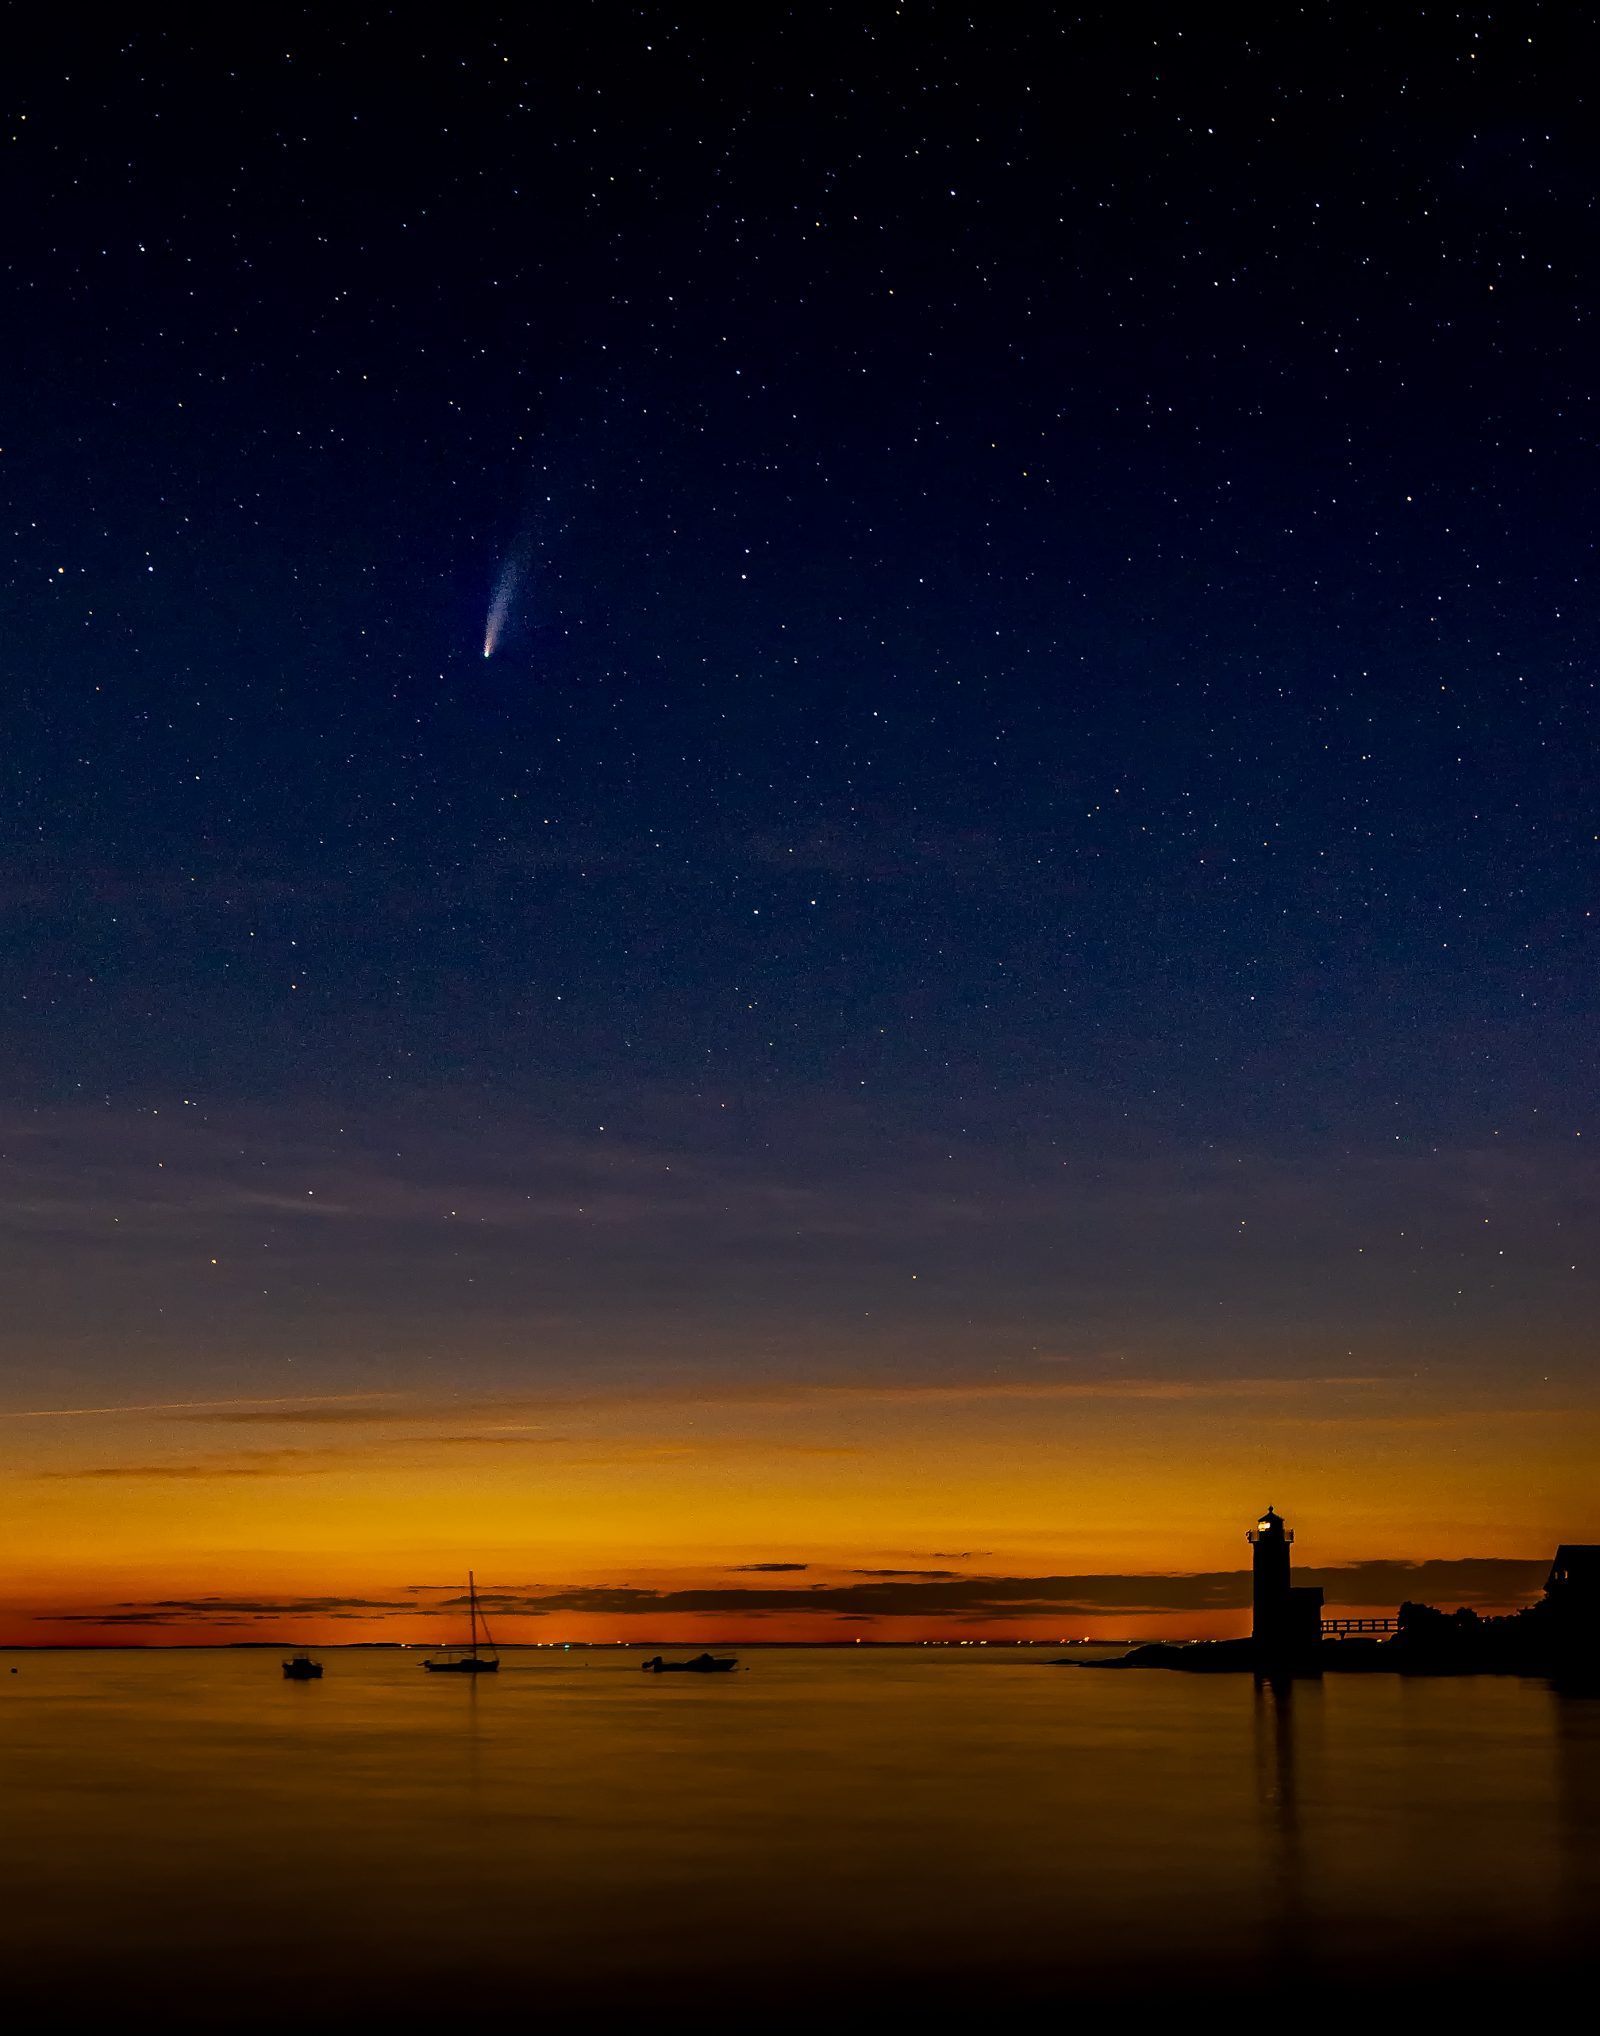 Comet Over the Lighthouse